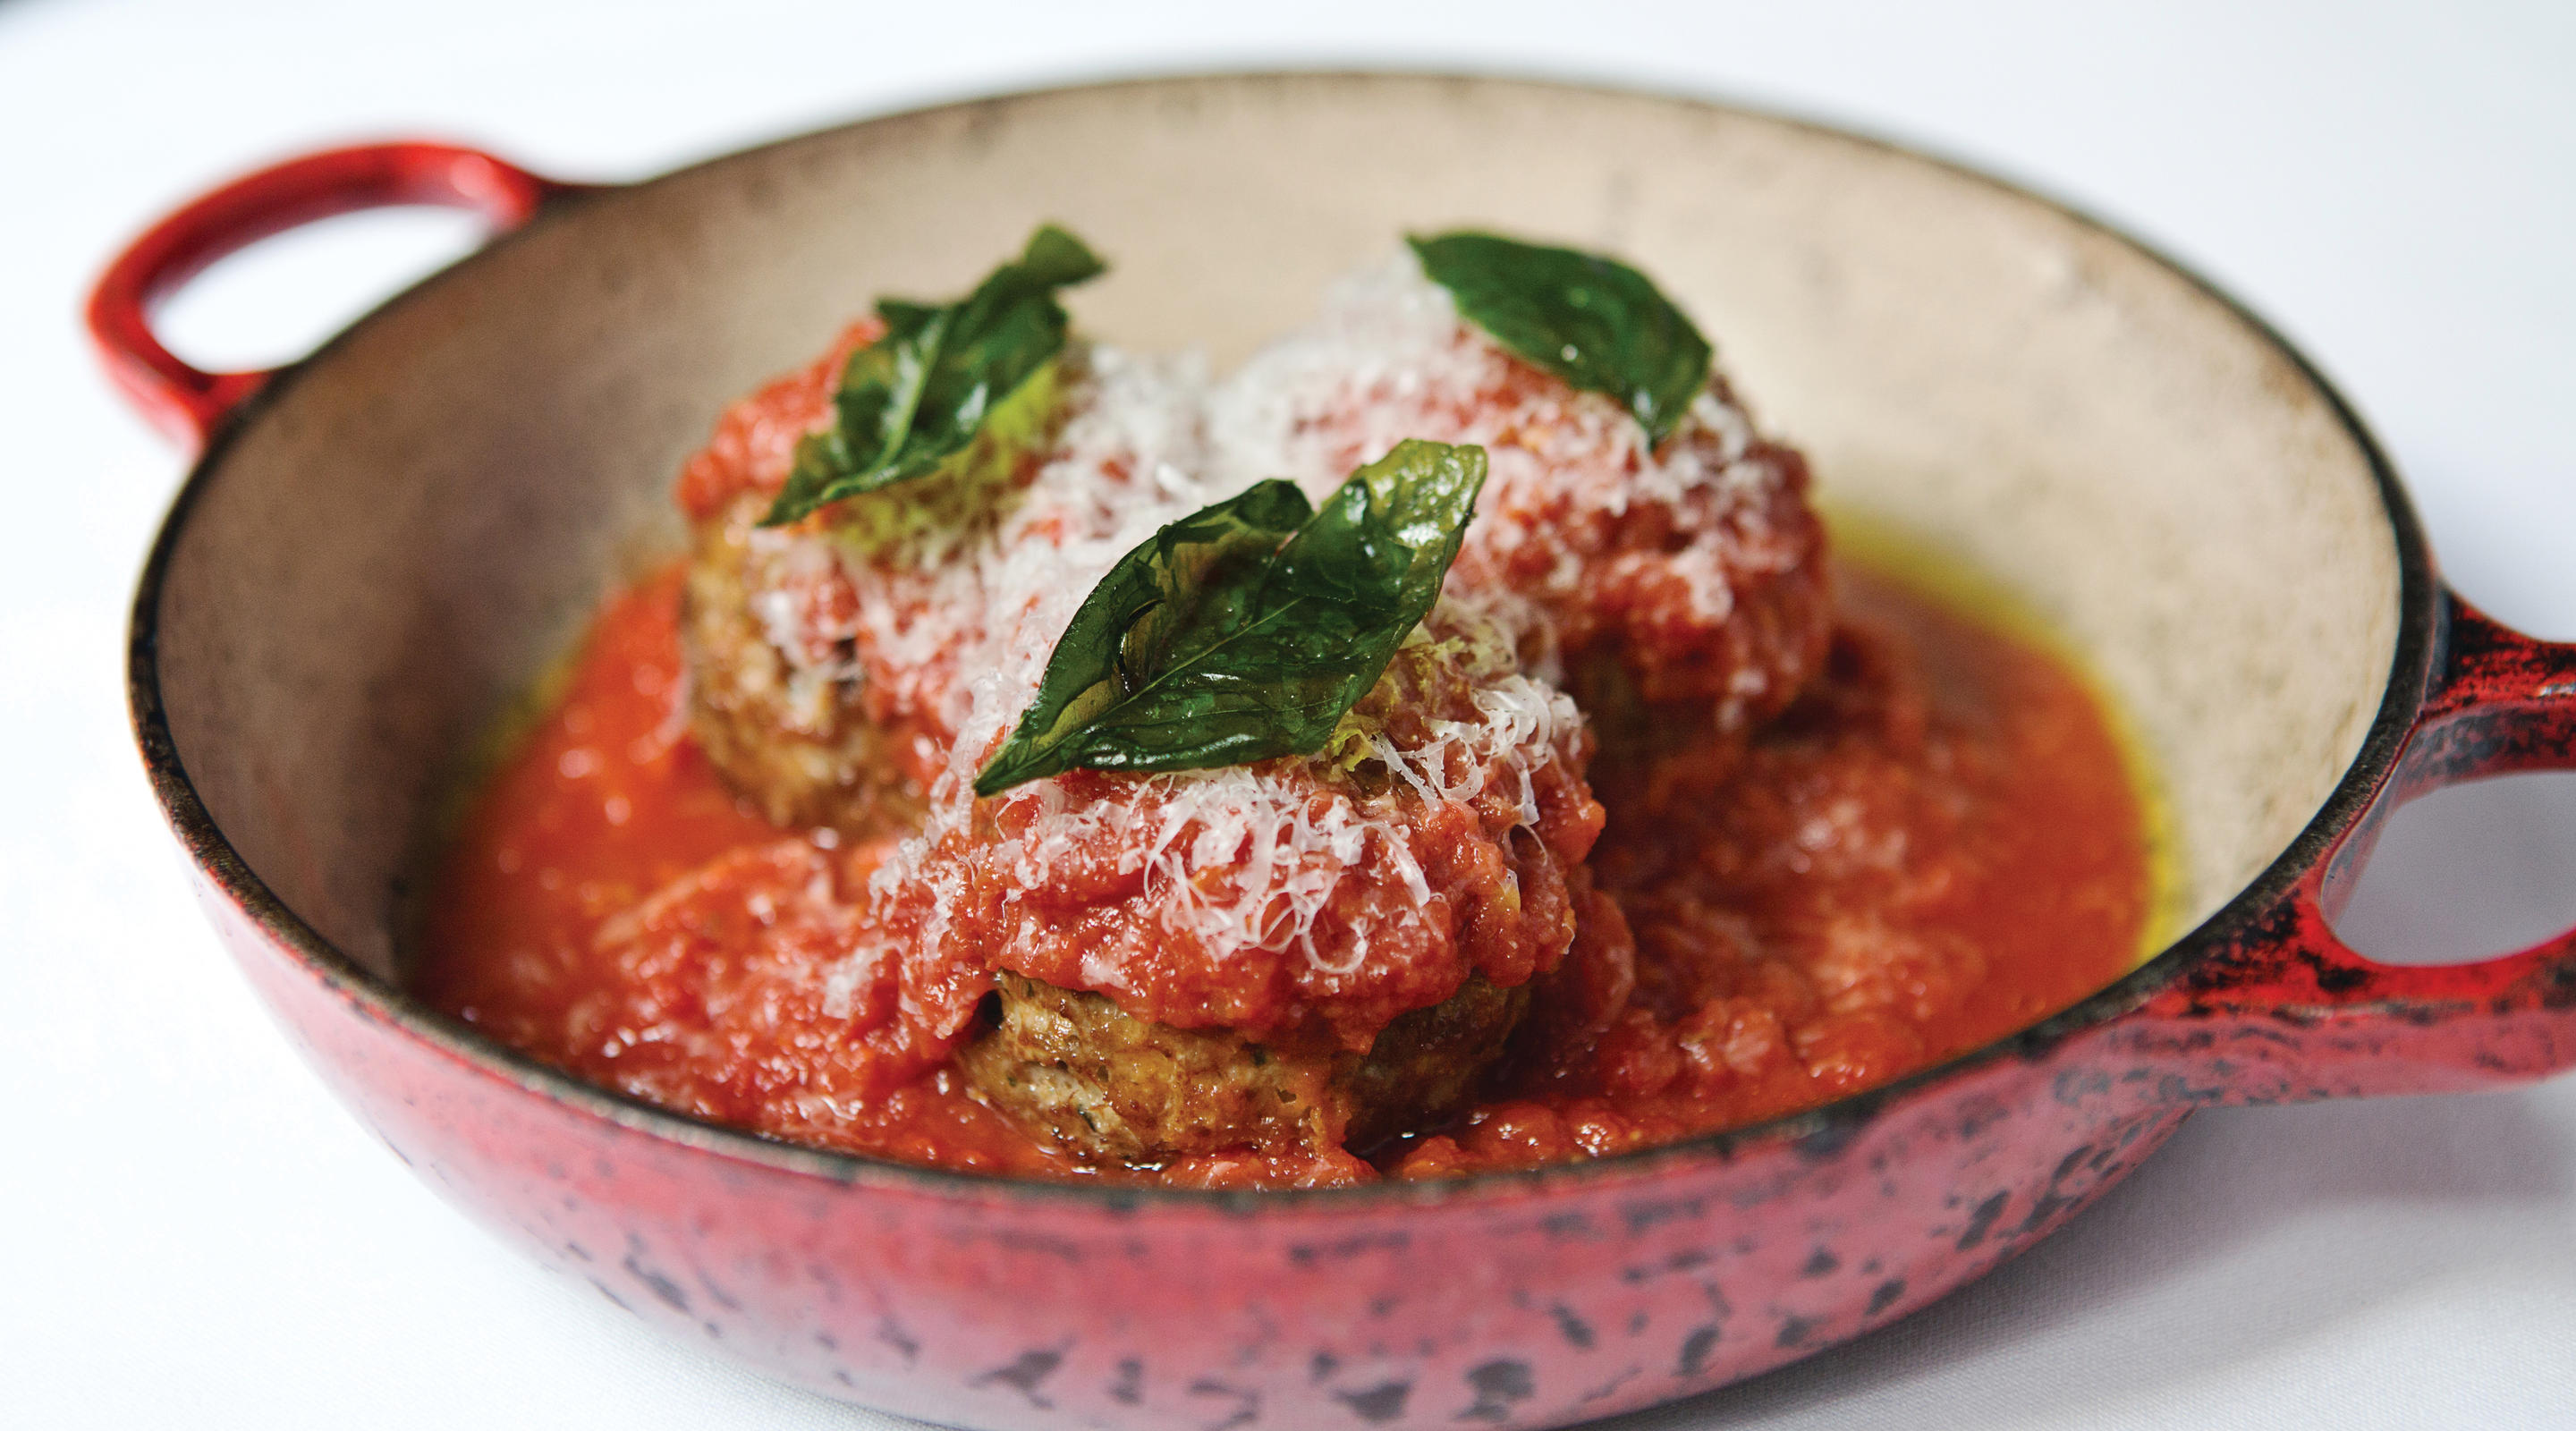 Meatballs topped with grated cheese and basil.